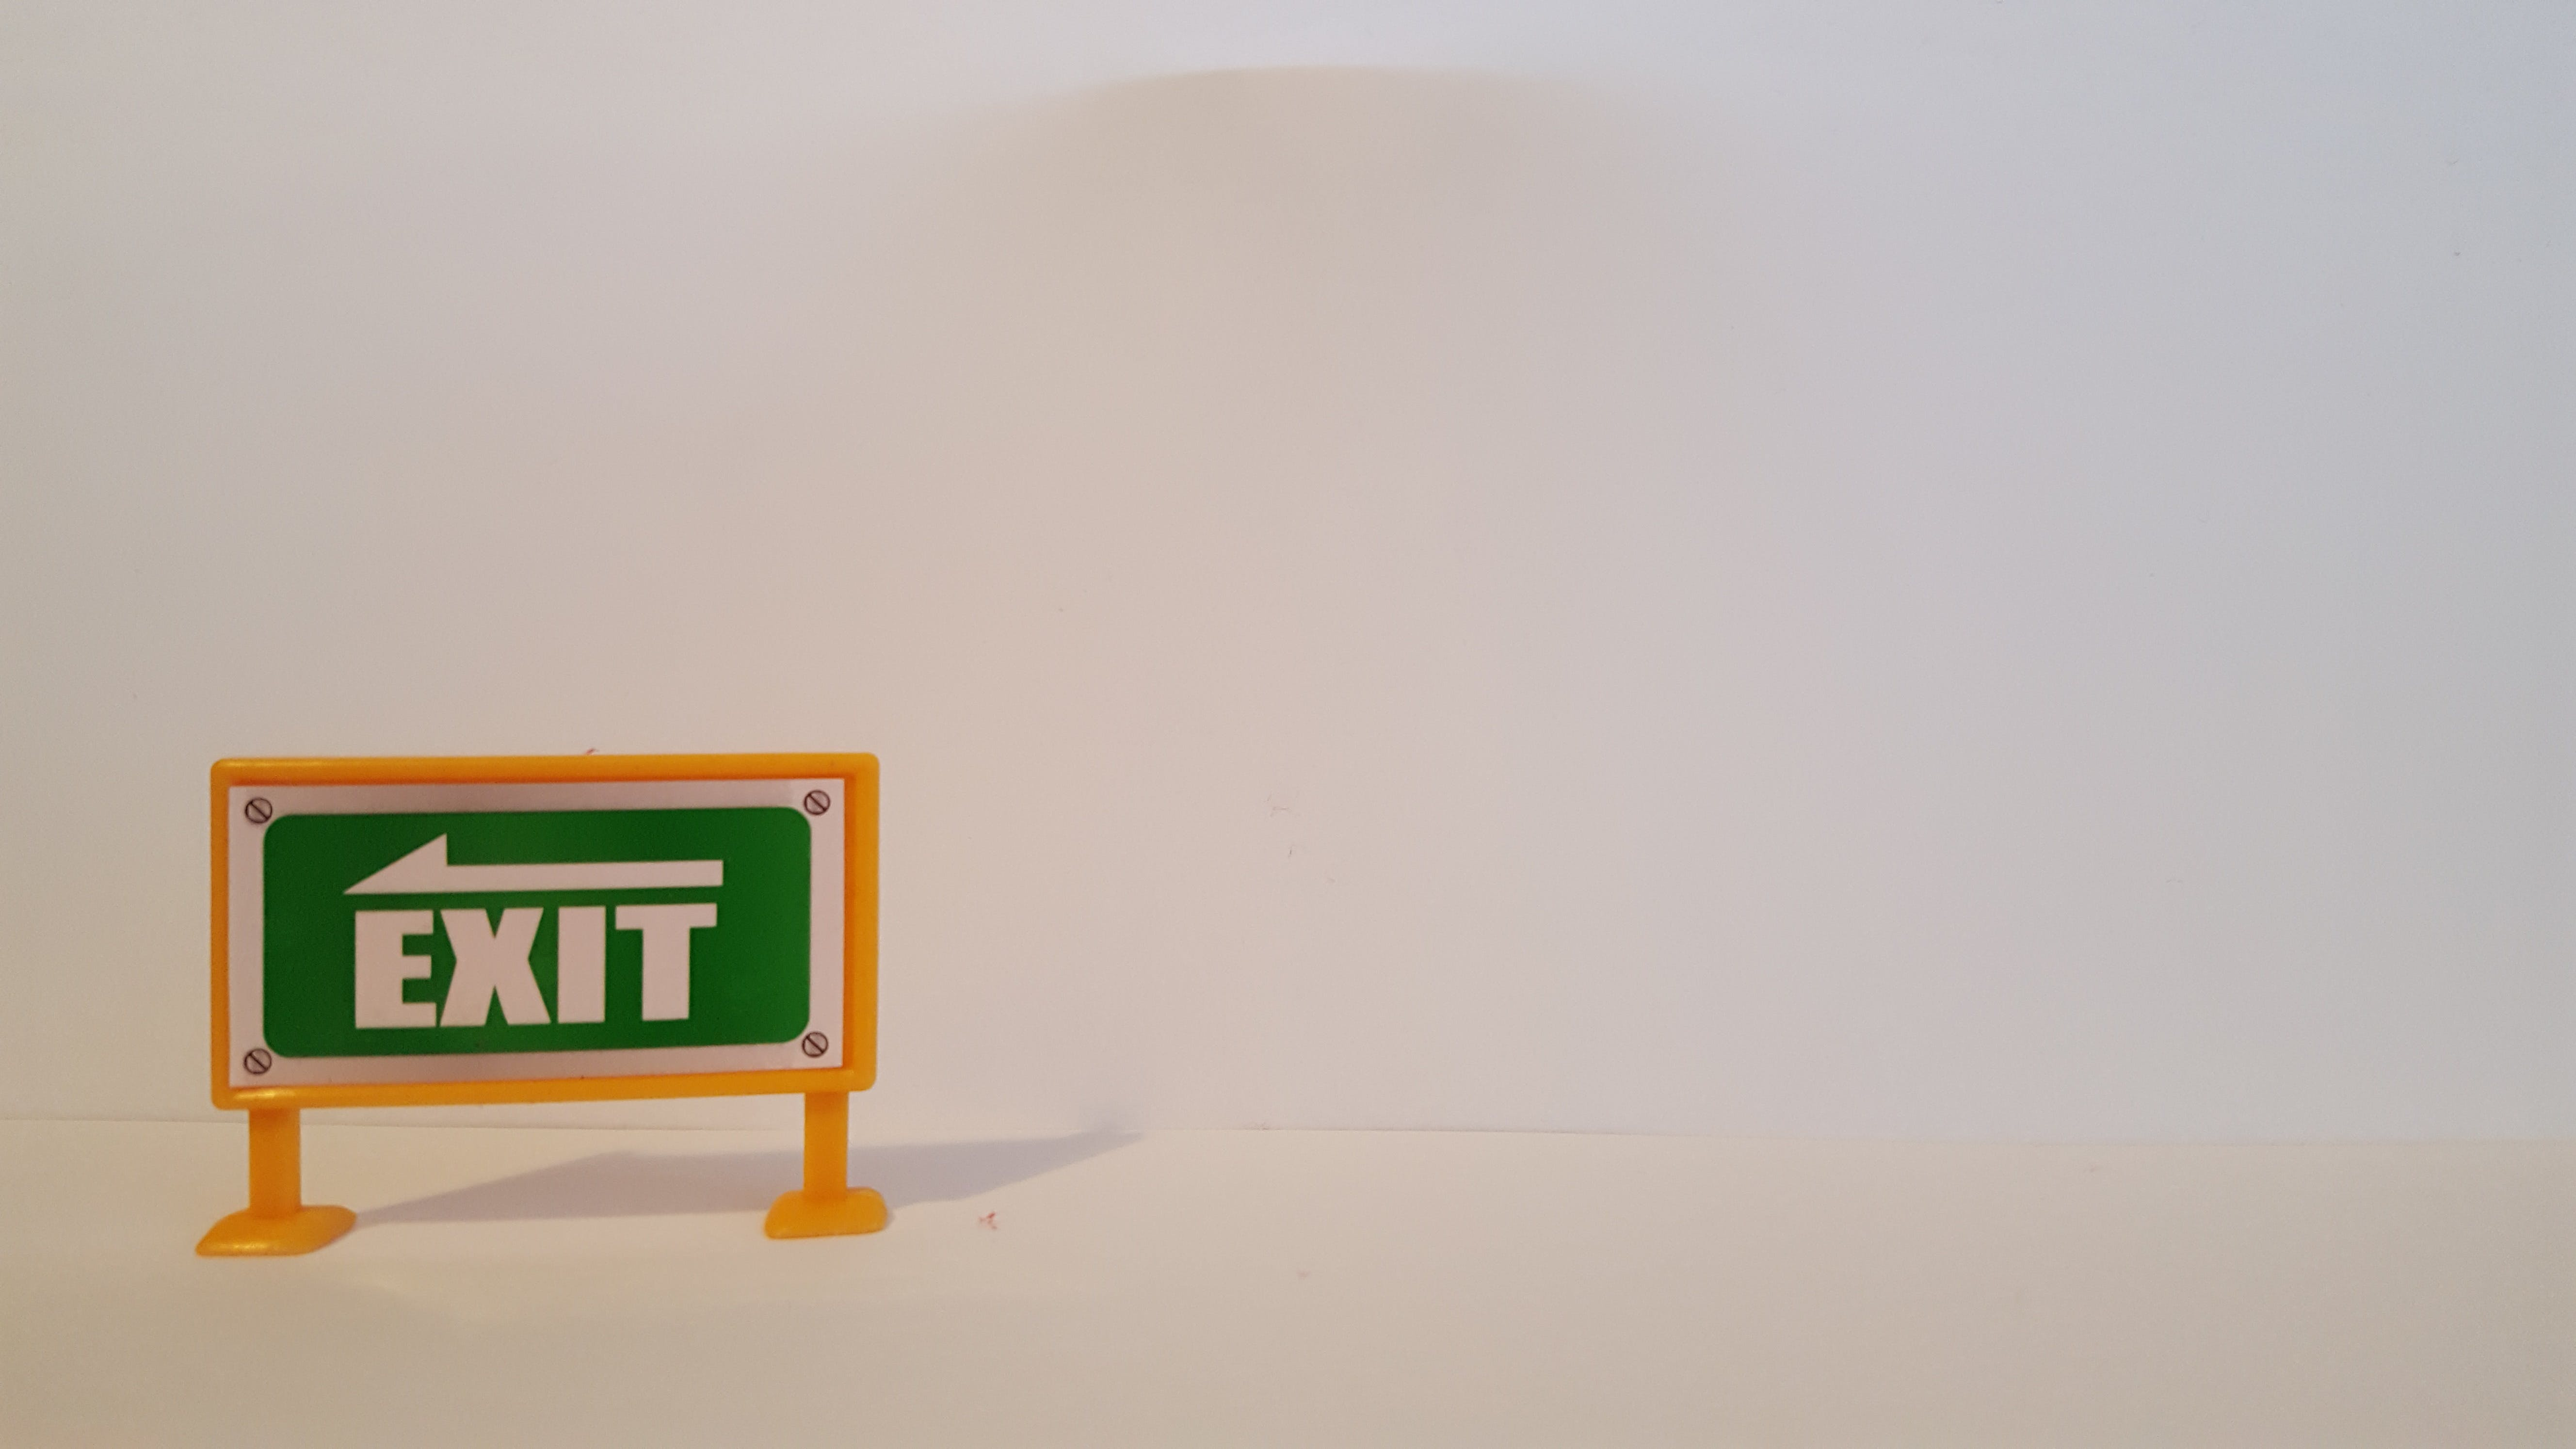 Free stock photo of exit, road sign